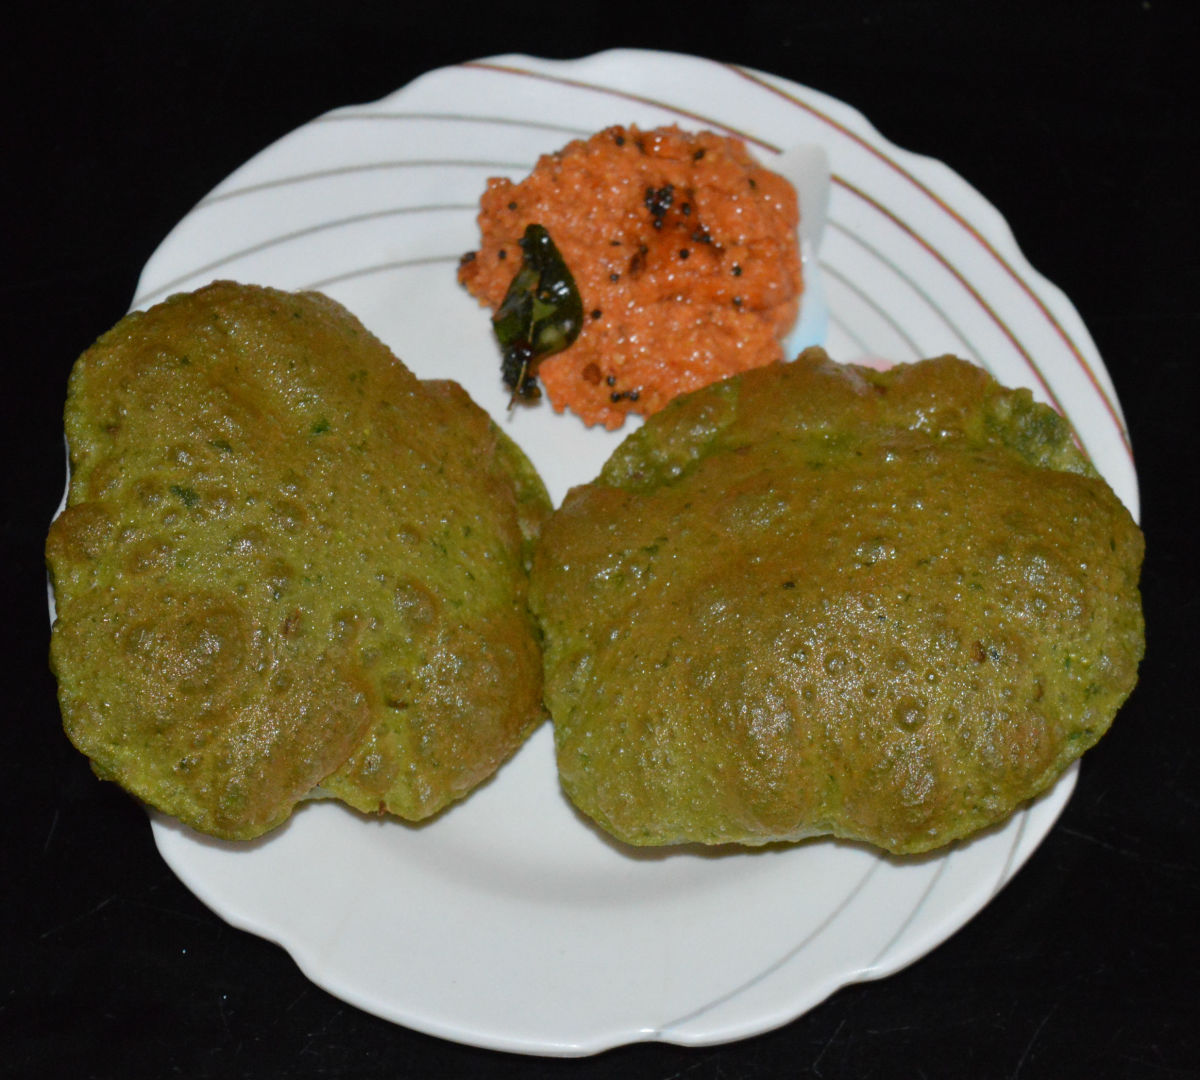 Serve this chutney as a side dish with rice, roti, dosa, idly, puri etc.